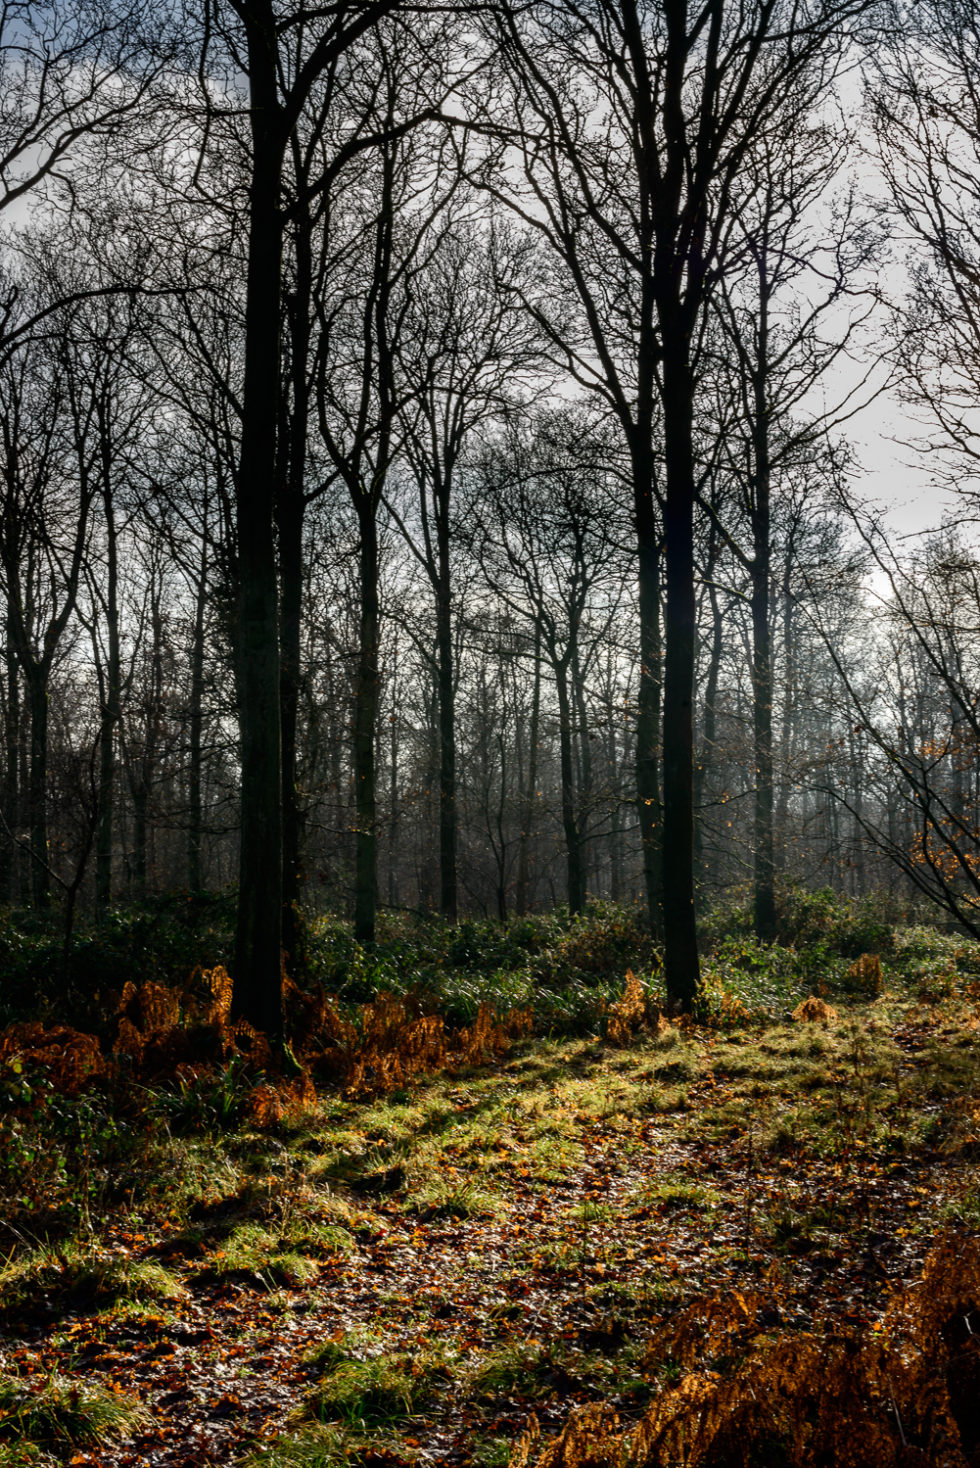 130/365v3 – Woodland Light.